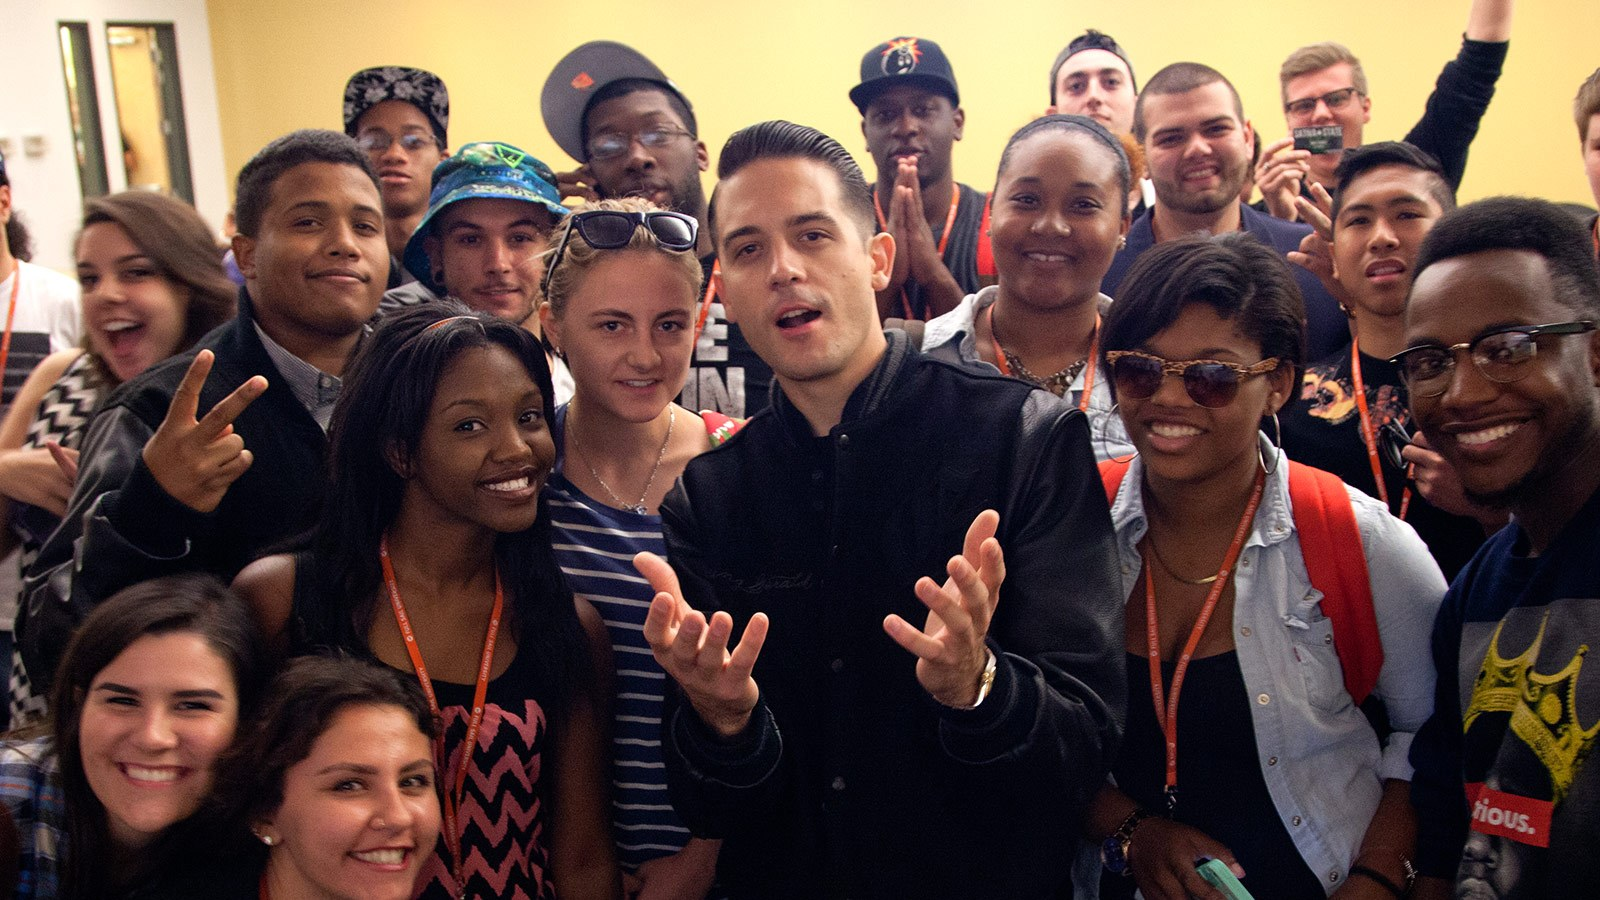 Rapper/Producer G-Eazy Inspires Students During Campus Visit - Hero image